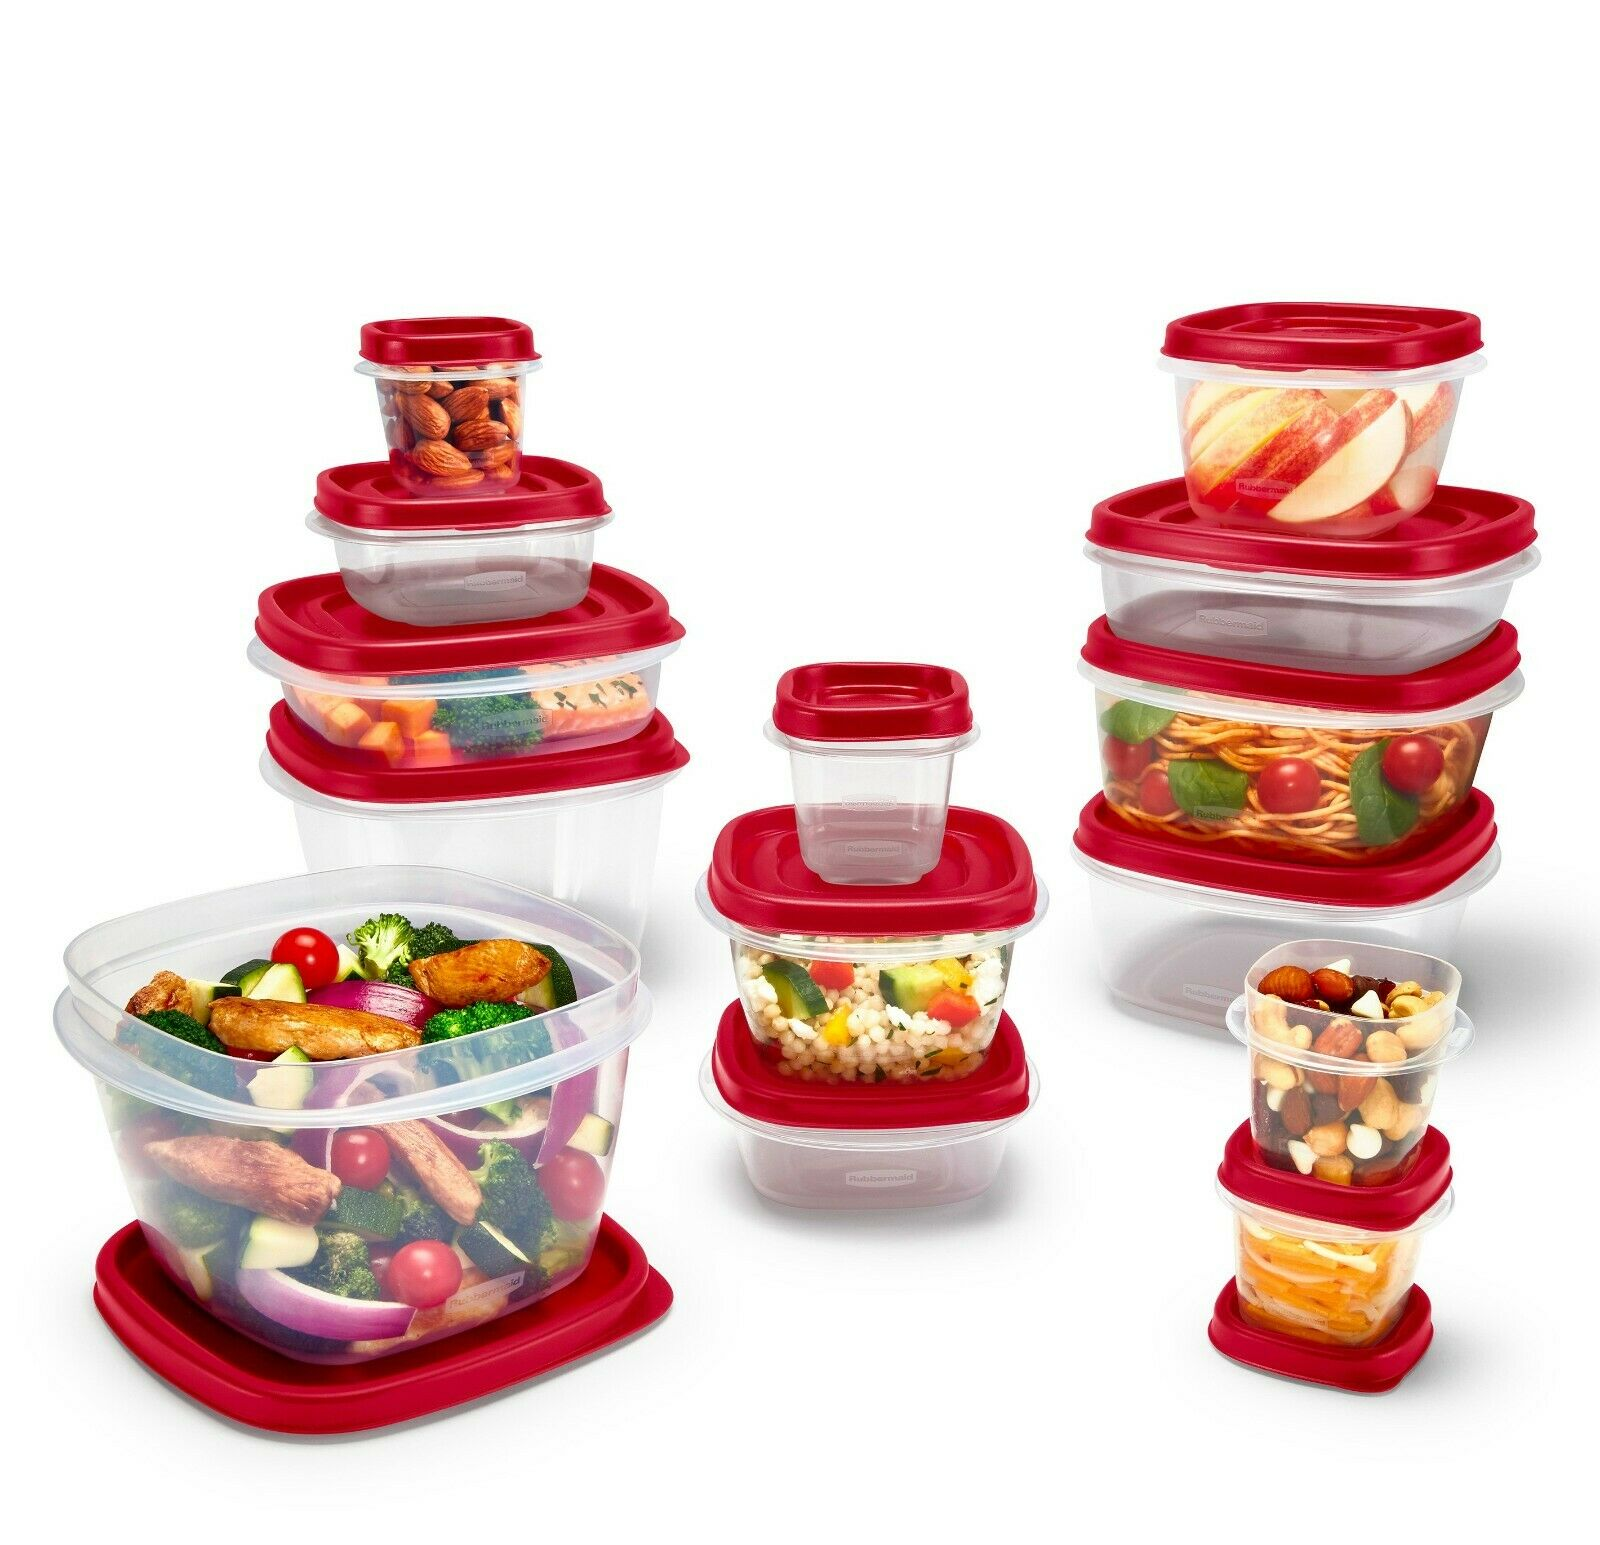 Rubbermaid Food Storage Containers Easy Find Vented Lids Home Kitchen 24 Pieces 1